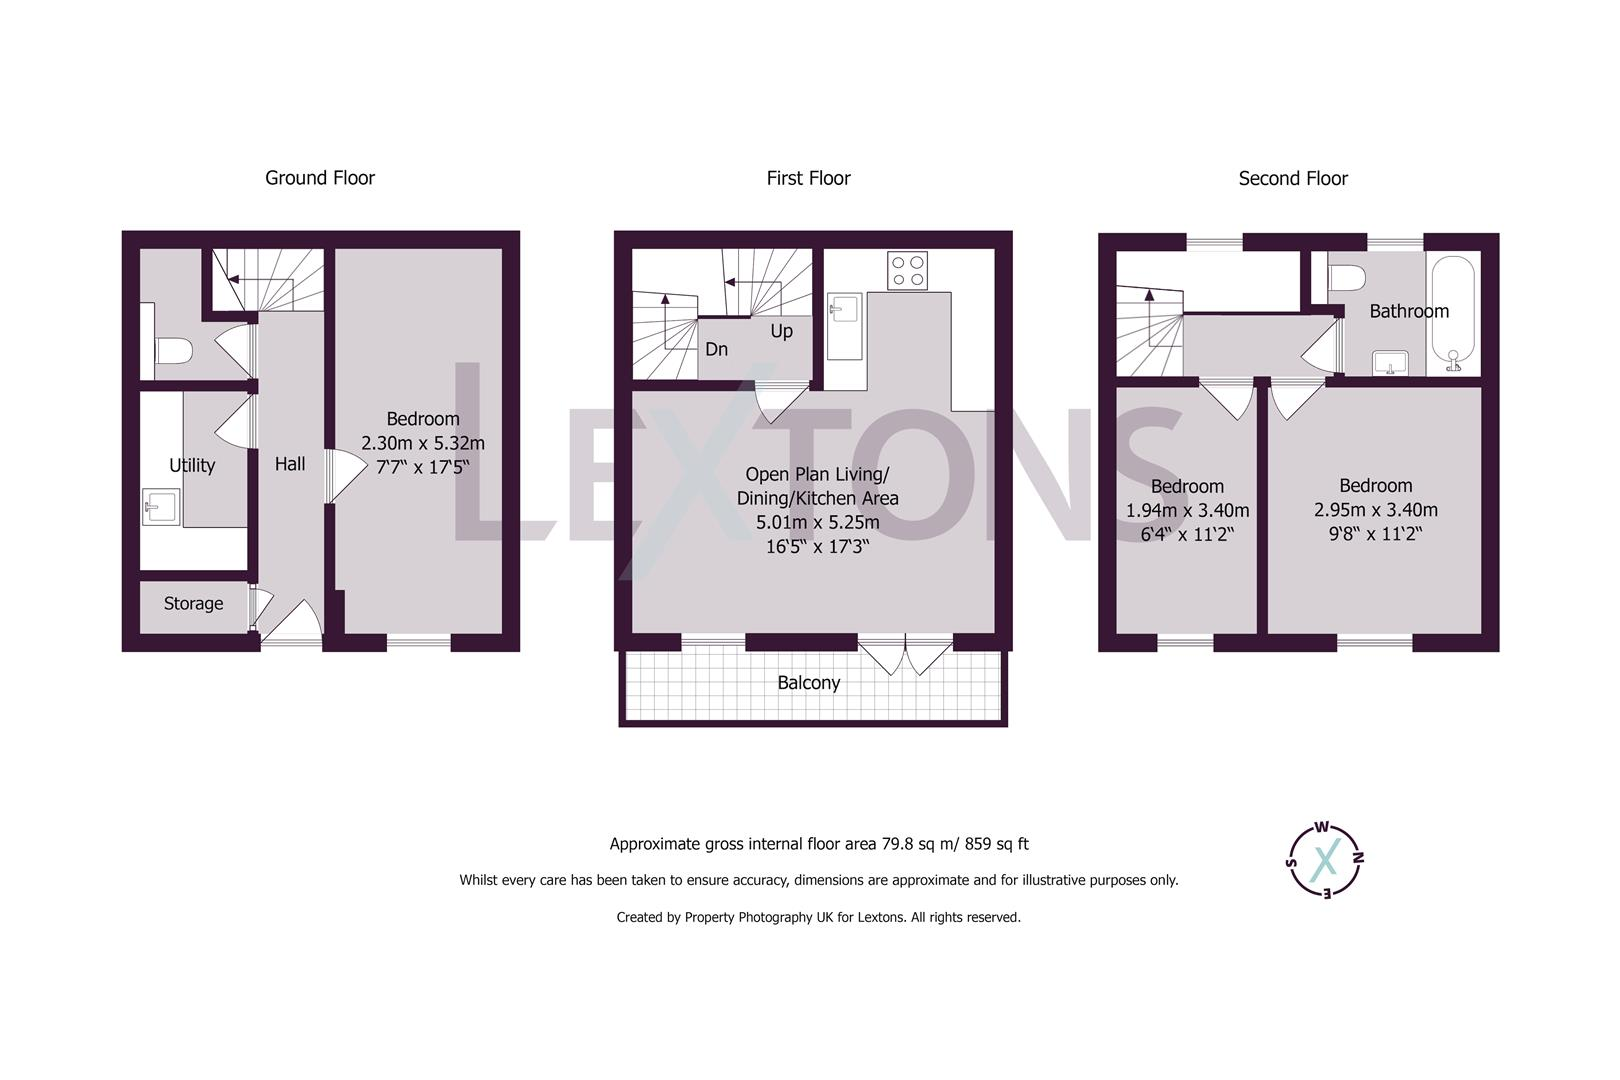 Floorplans For Wynnes Mews, Hove